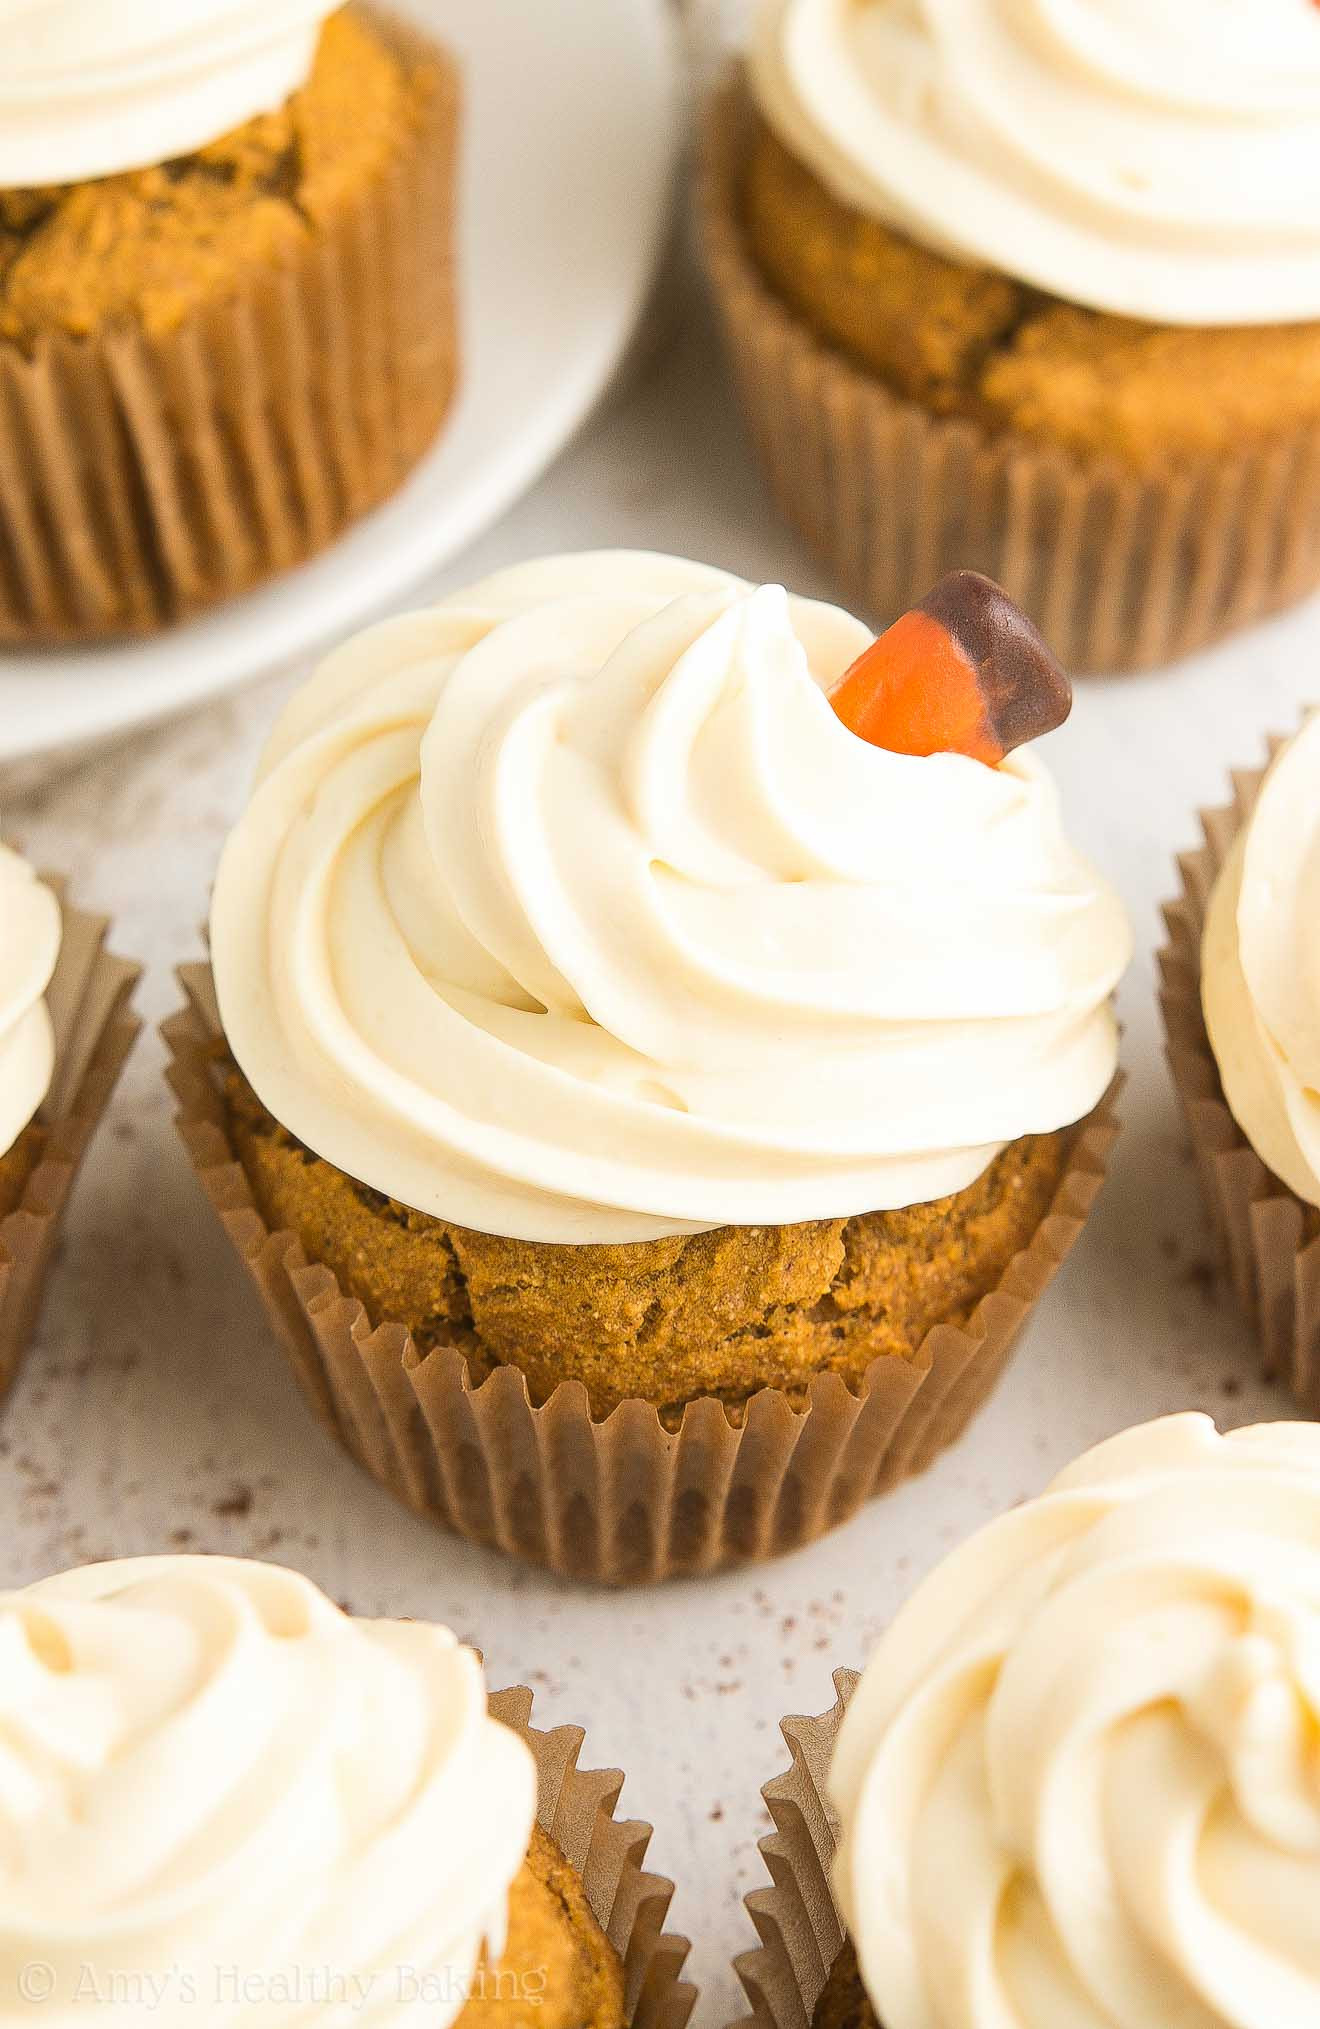 Healthy Pumpkin Cupcakes  Healthy Pumpkin Cupcakes with Cream Cheese Frosting